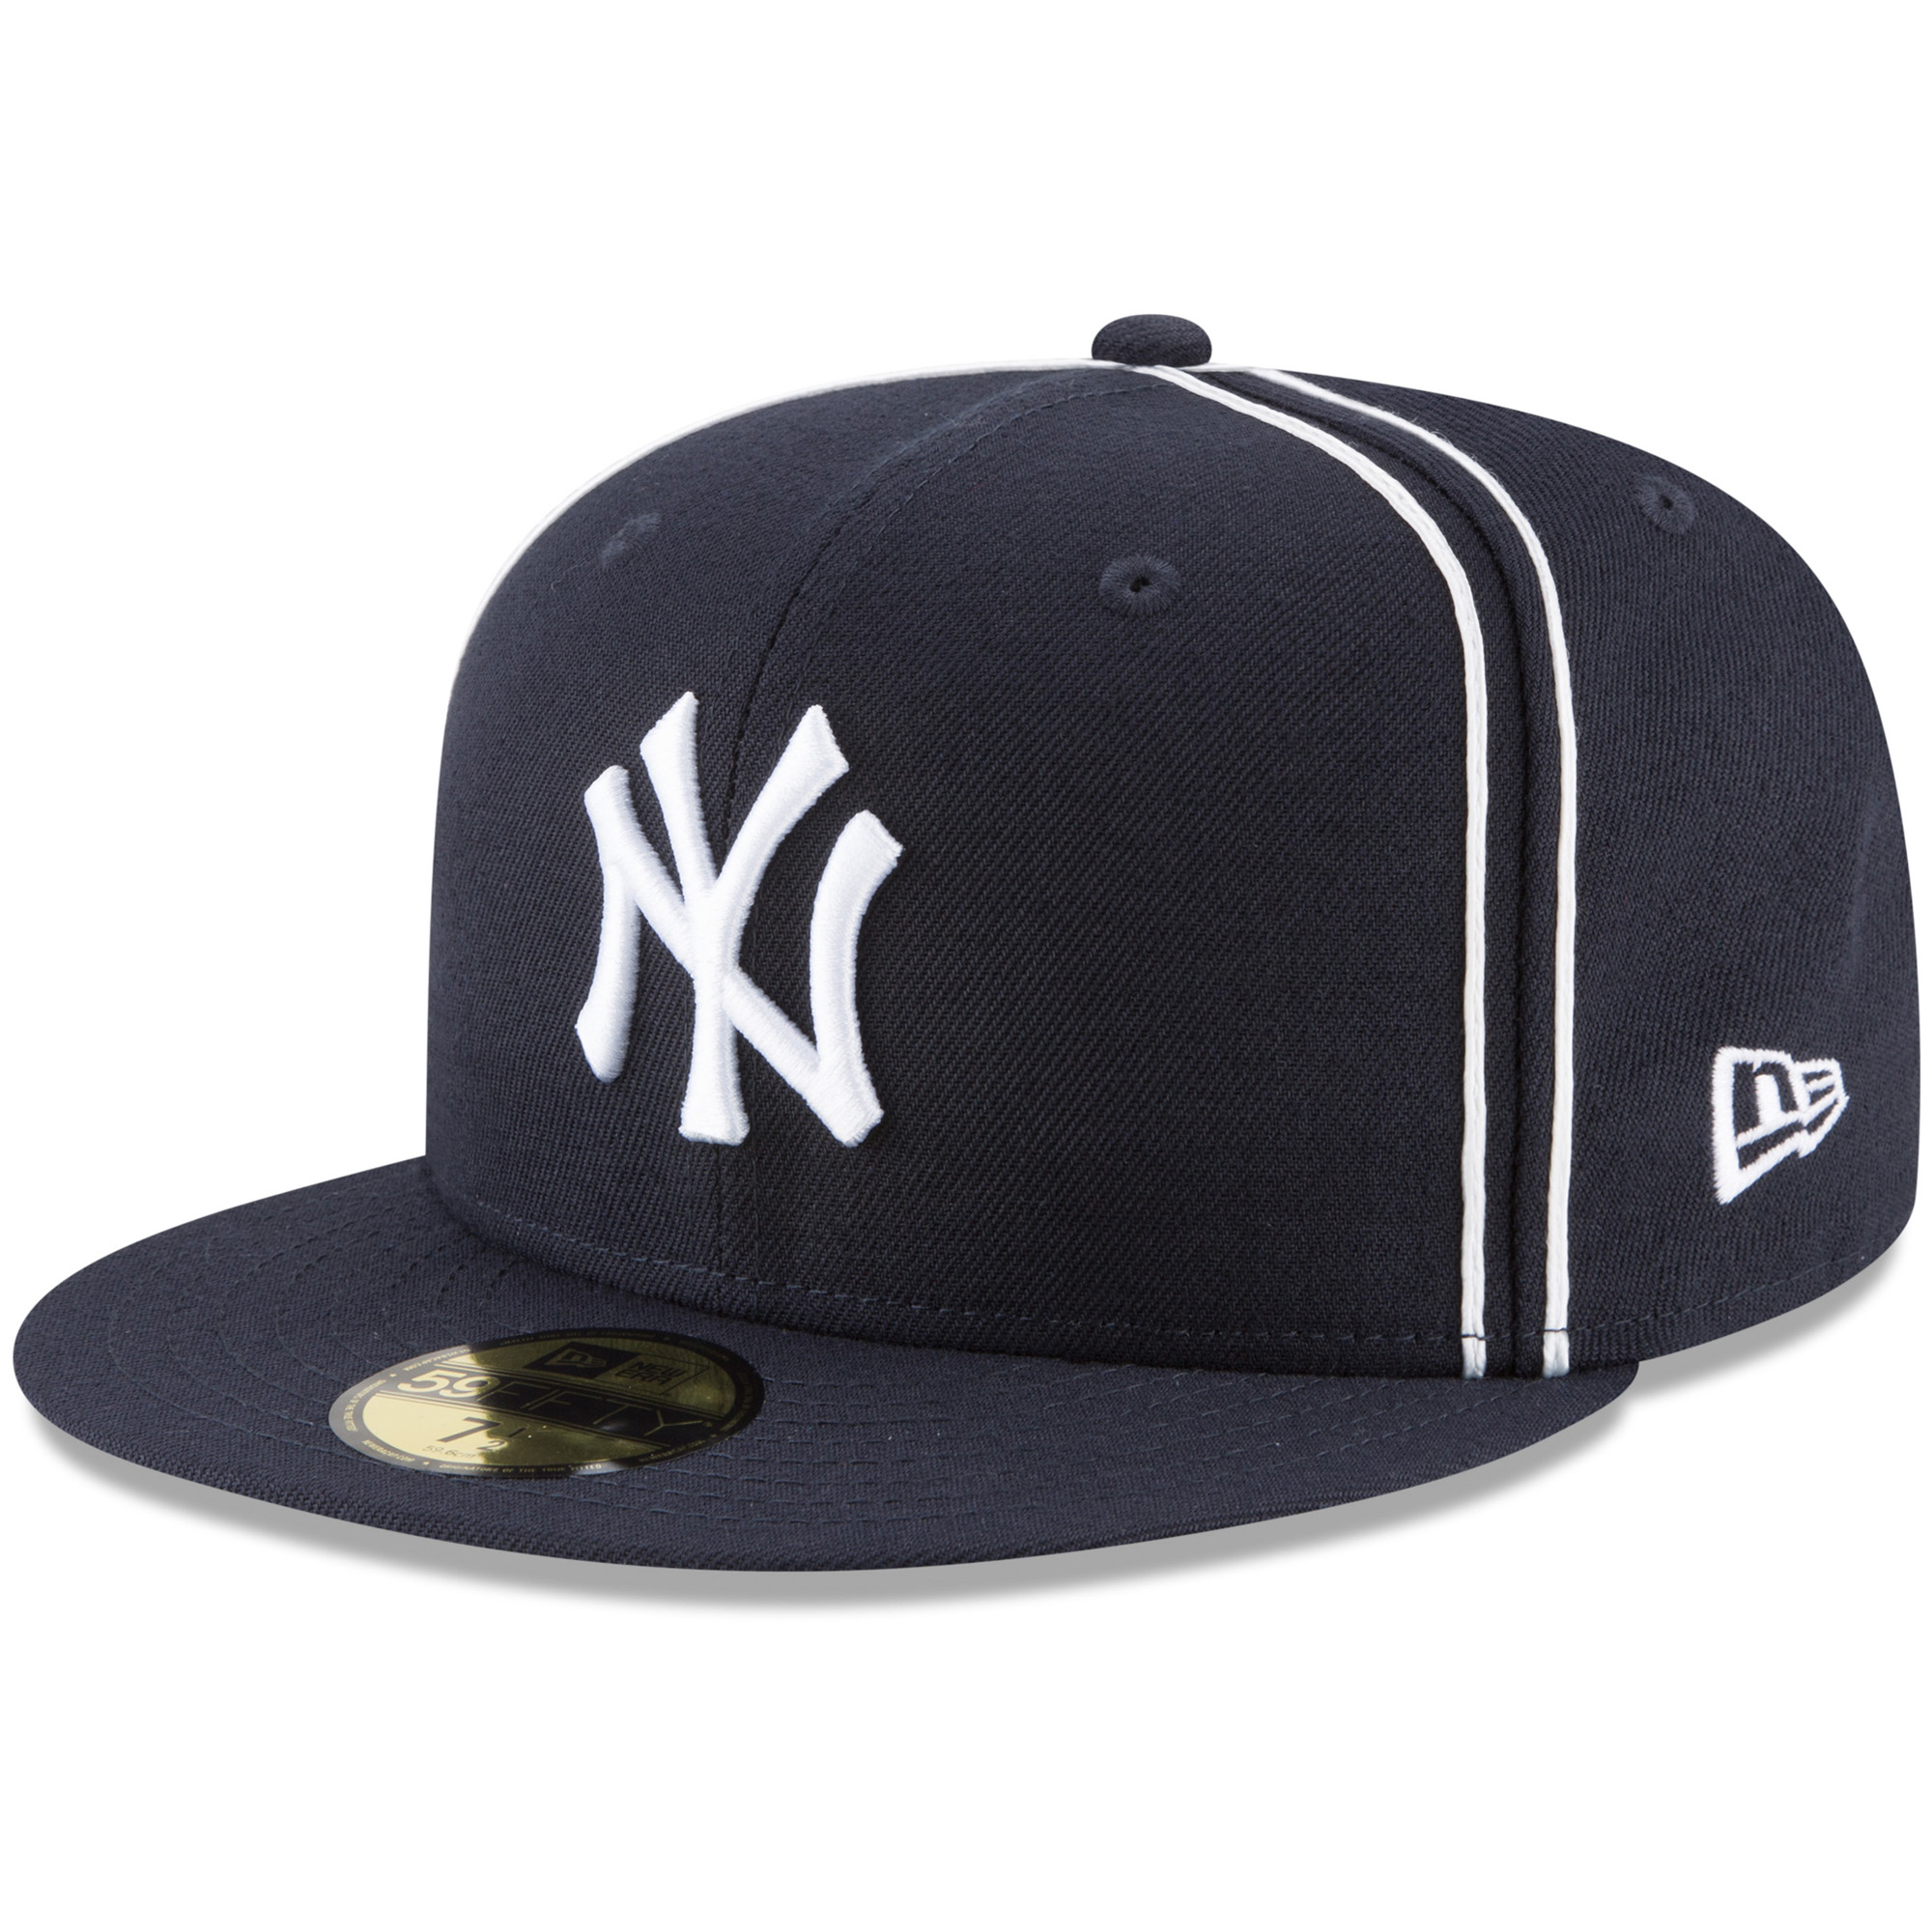 New York Yankees New Era Y2K Soutache 59FIFTY Fitted Hat - Navy